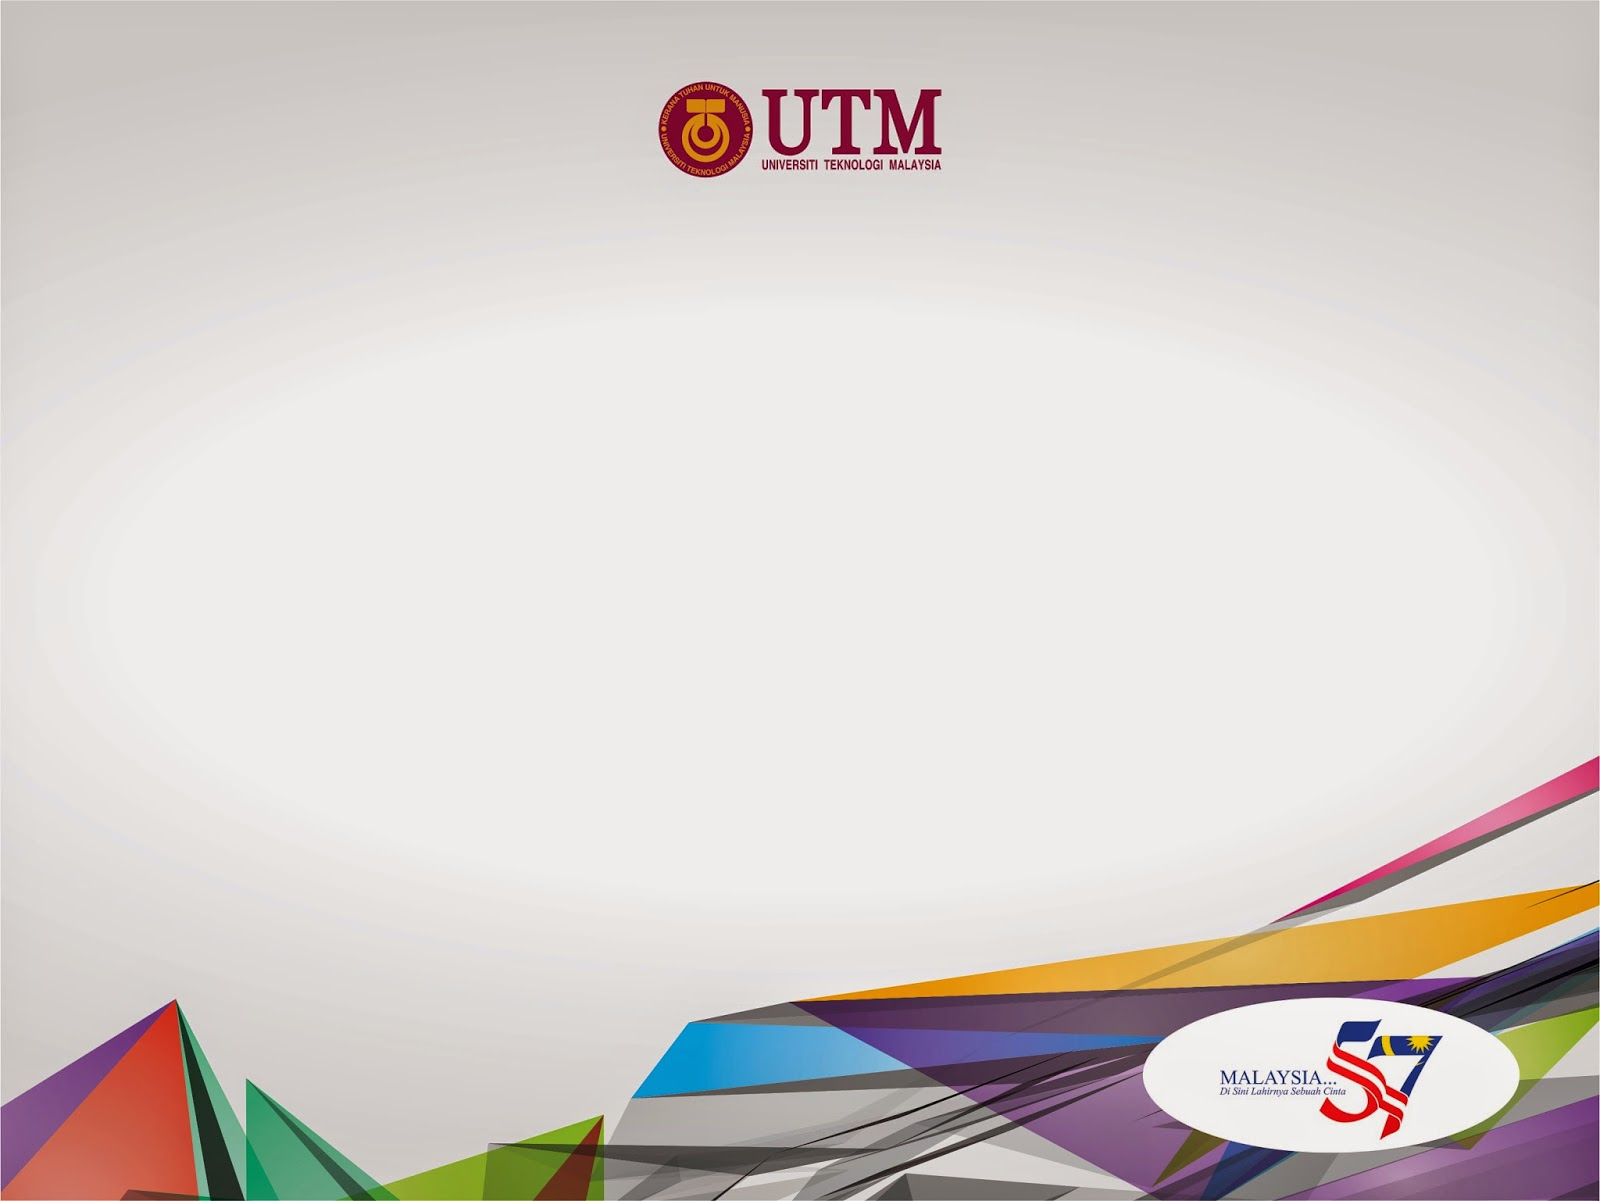 utm powerpoint template. ome to blog graphic unit utm welc, Presentation